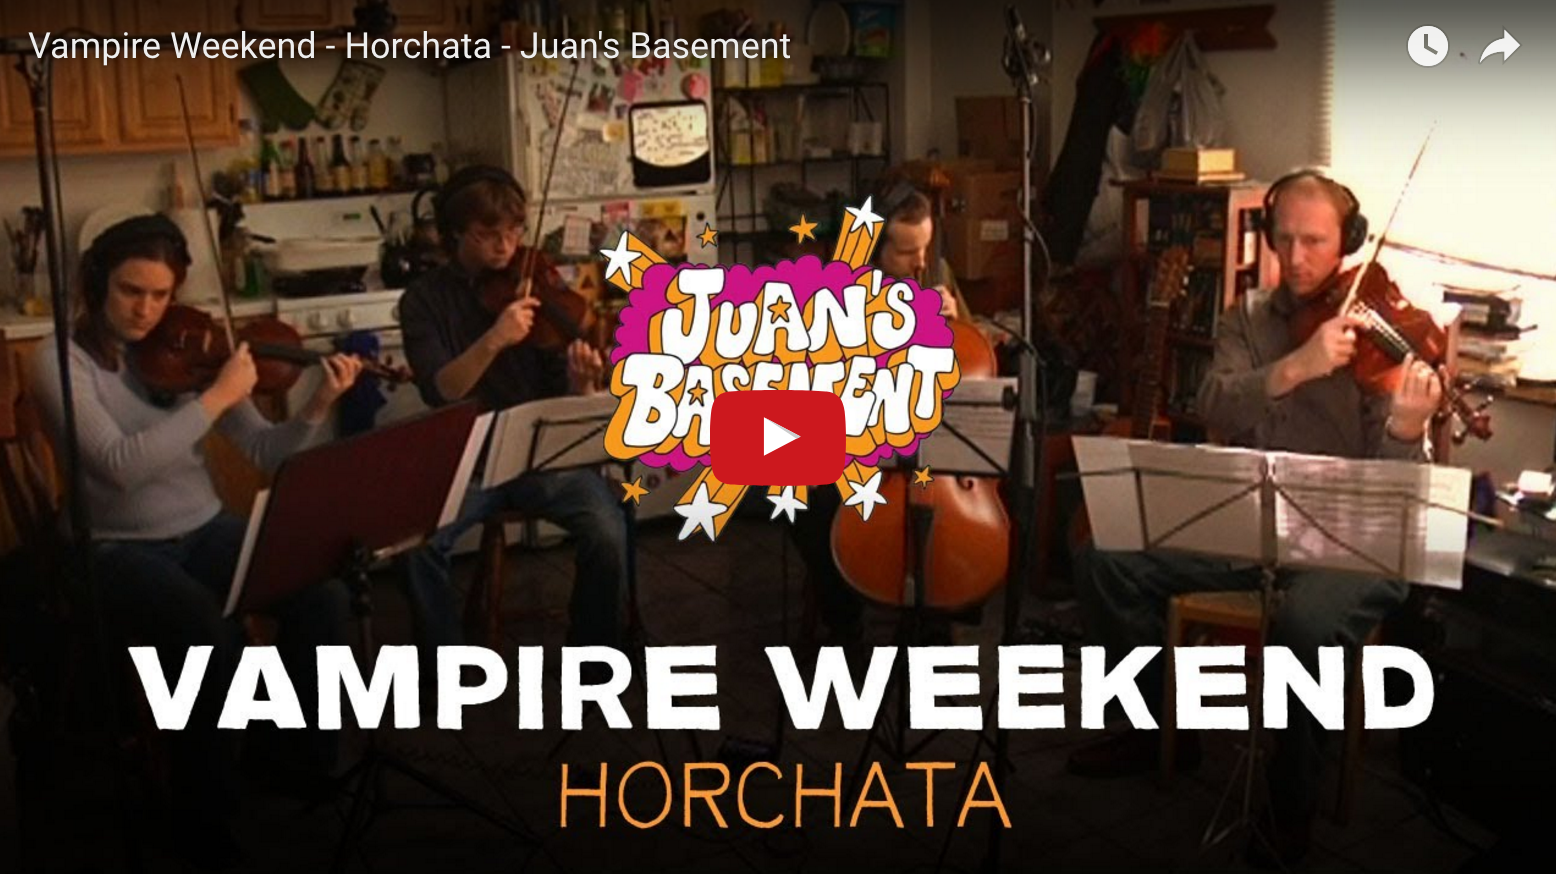 Vampire Weekend on Juan's Basement